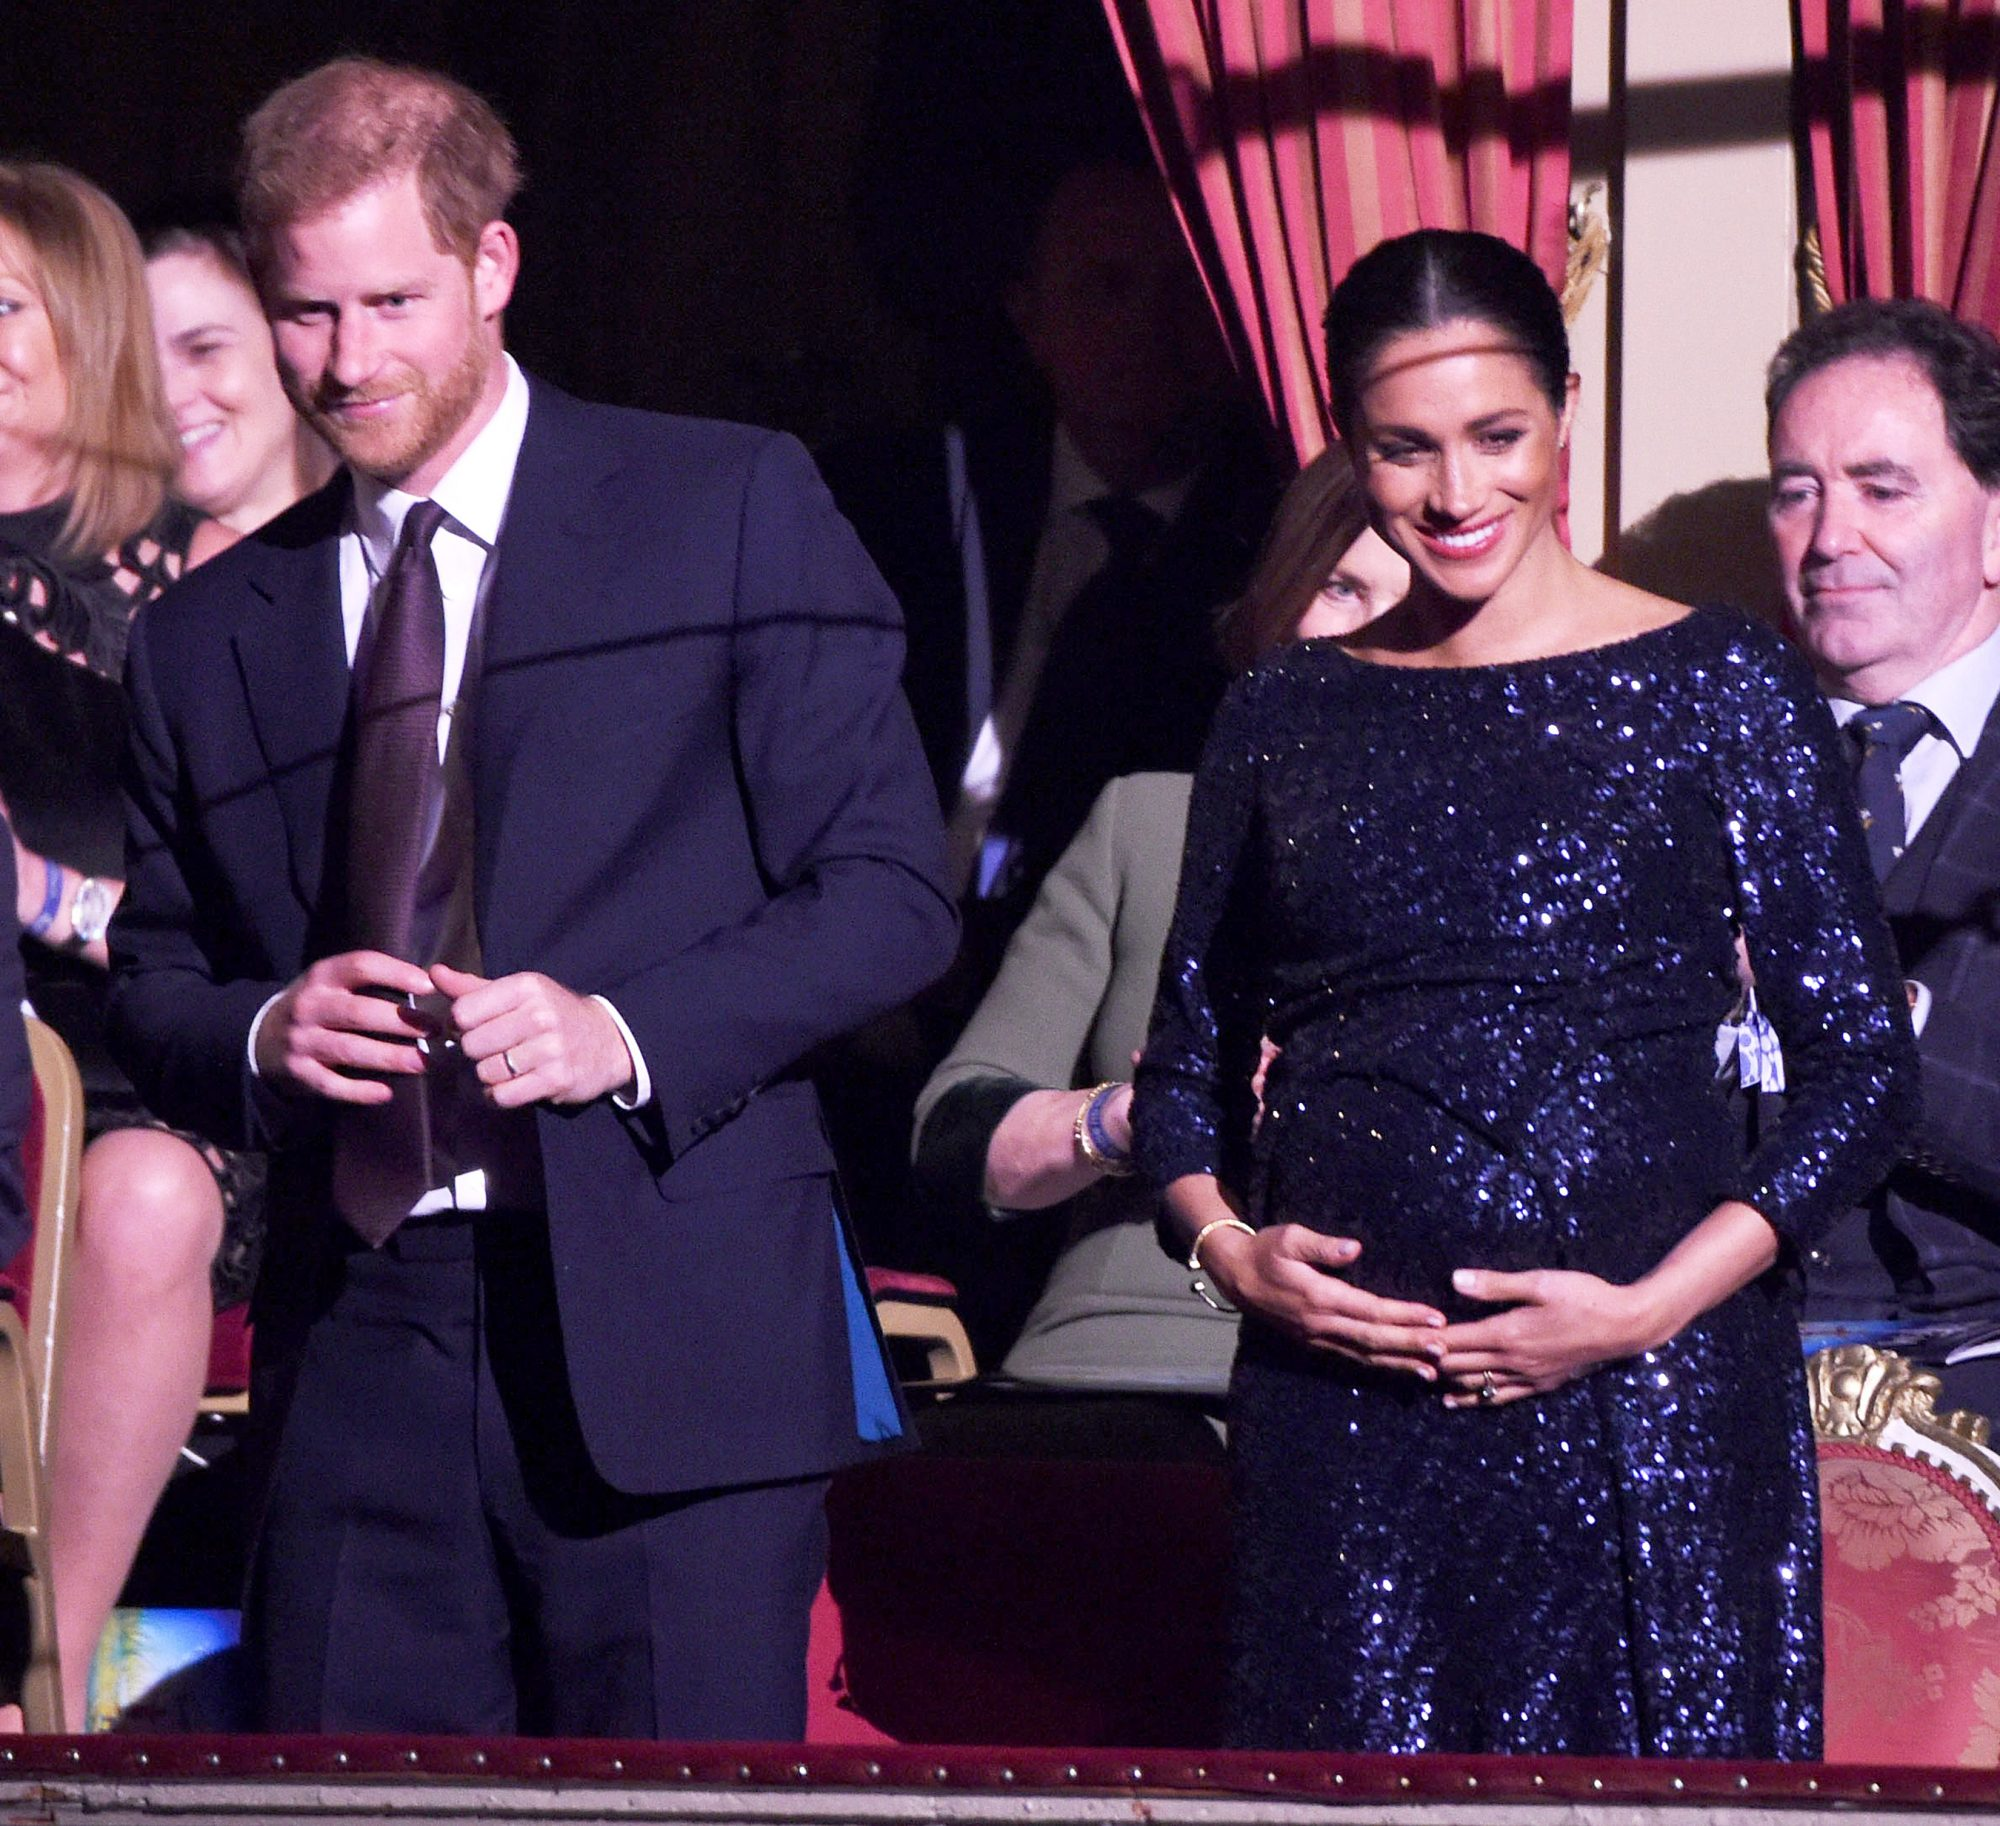 Prince Harry, Duke of Sussex, and Meghan, Duchess of Sussex attend Totem by Cirque du Soleil